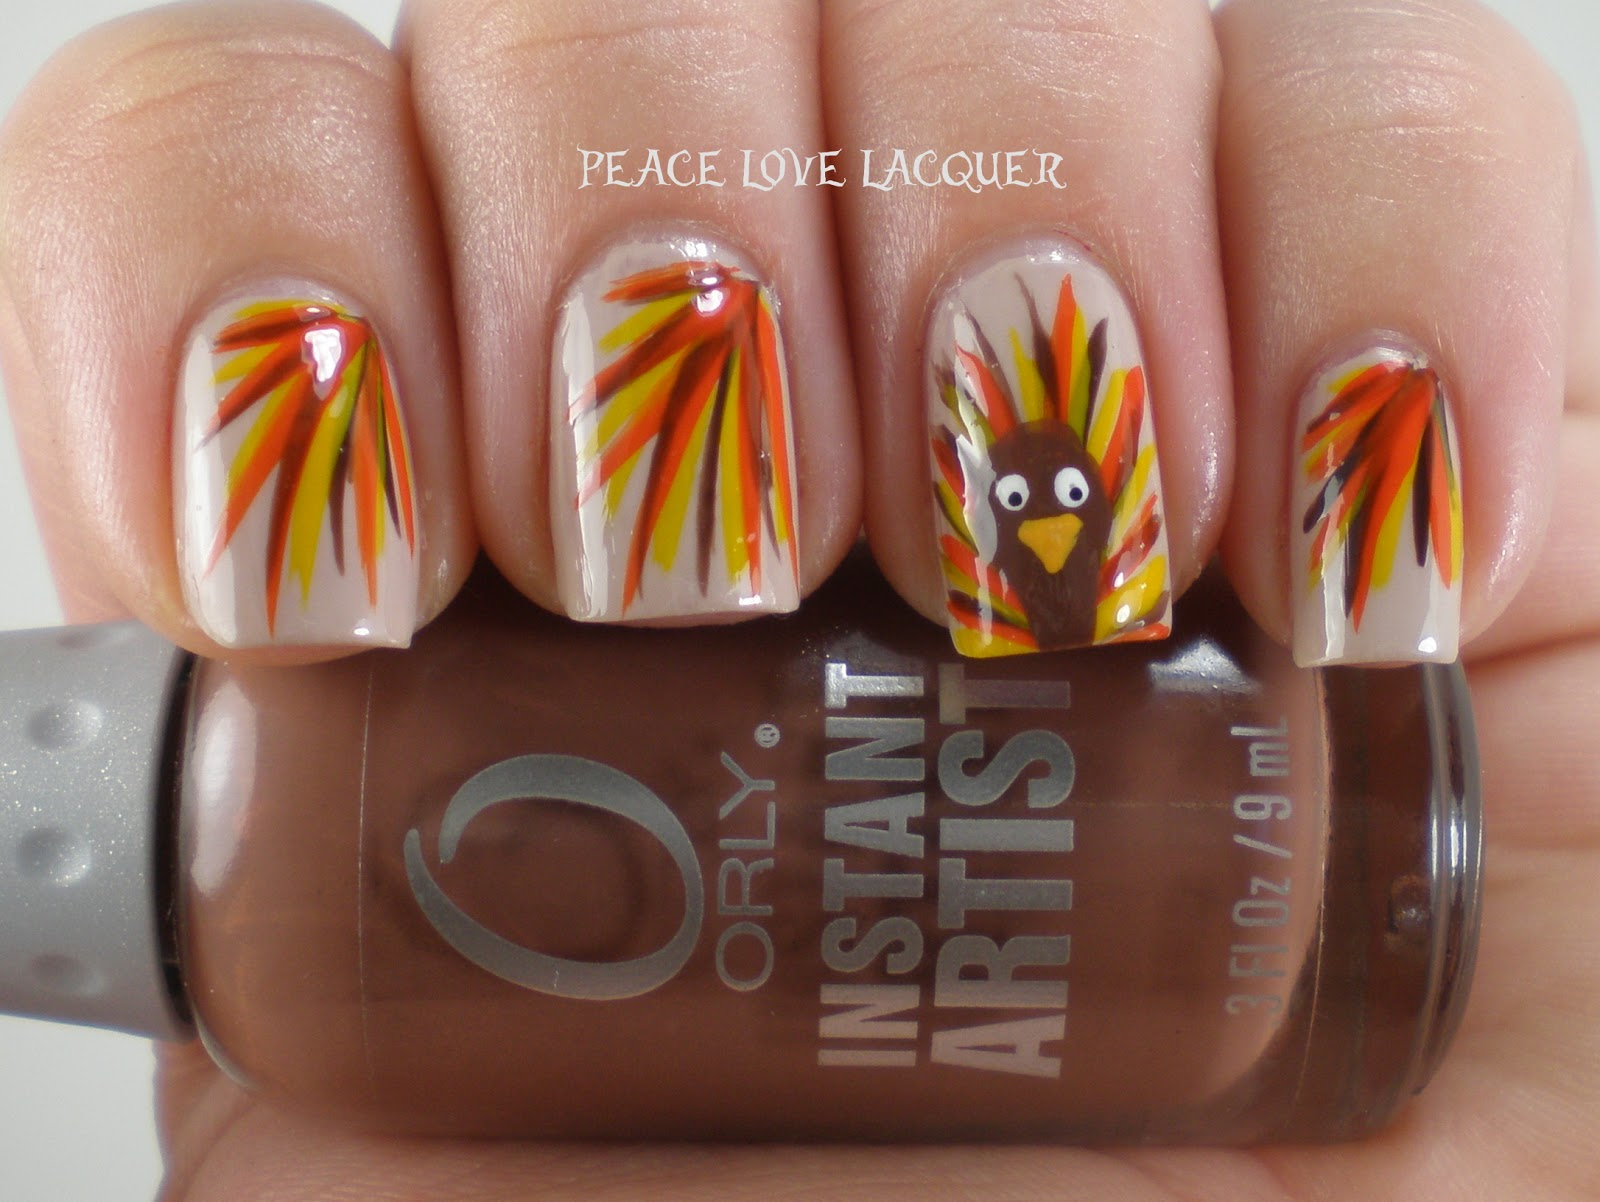 Peace love lacquer thanksgiving nail art challenge day 5 turkeys thanksgiving nail art challenge day 5 turkeys prinsesfo Gallery